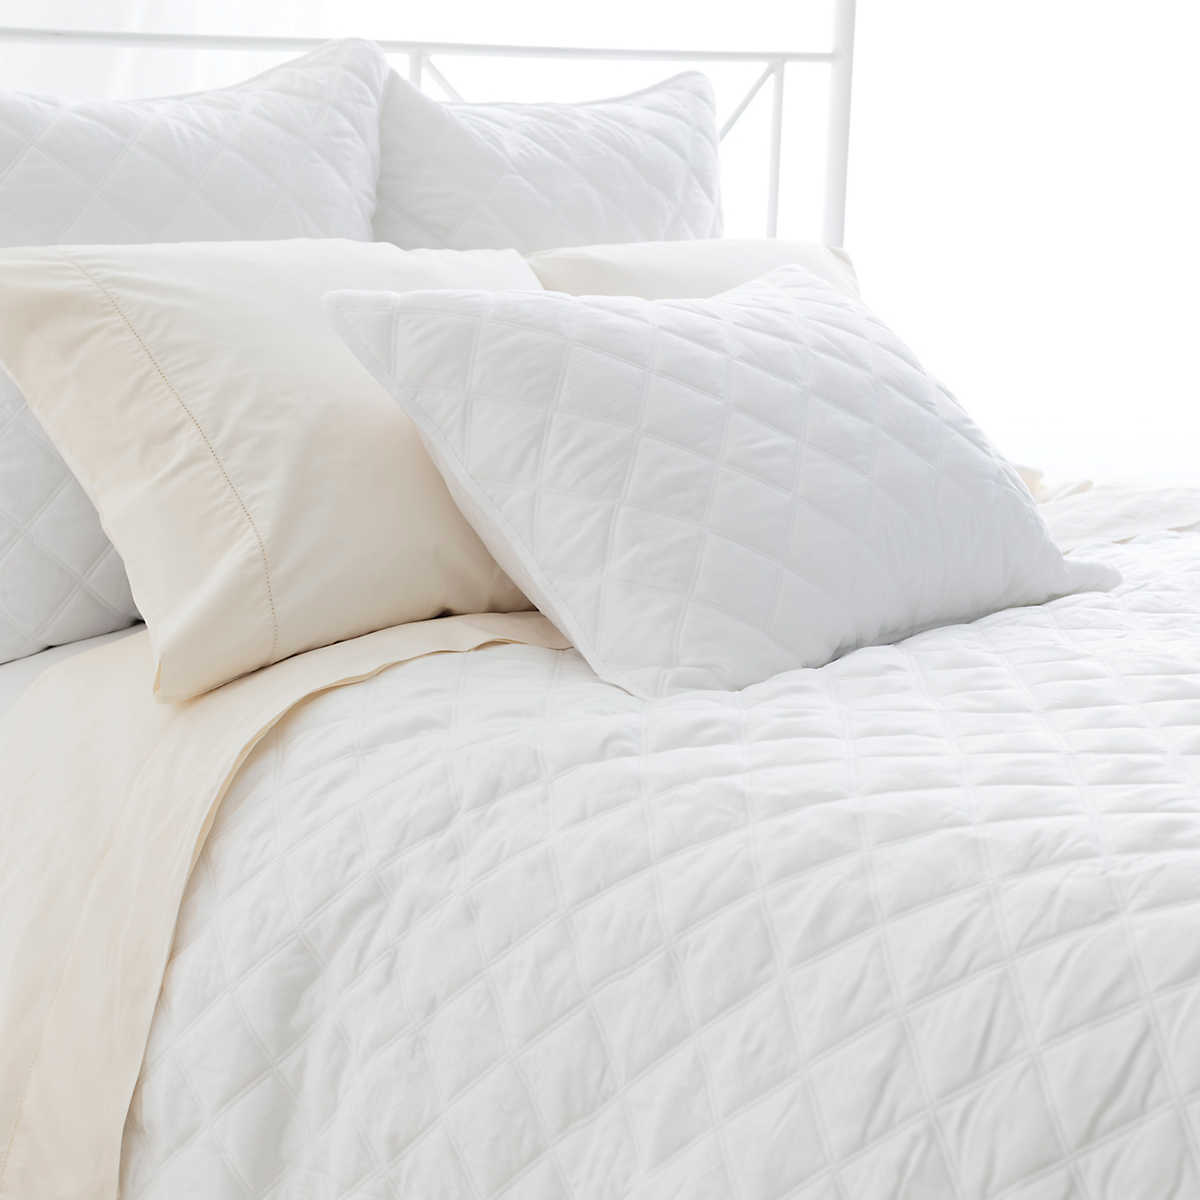 quilted silken solid white coverlet  pine cone hill -